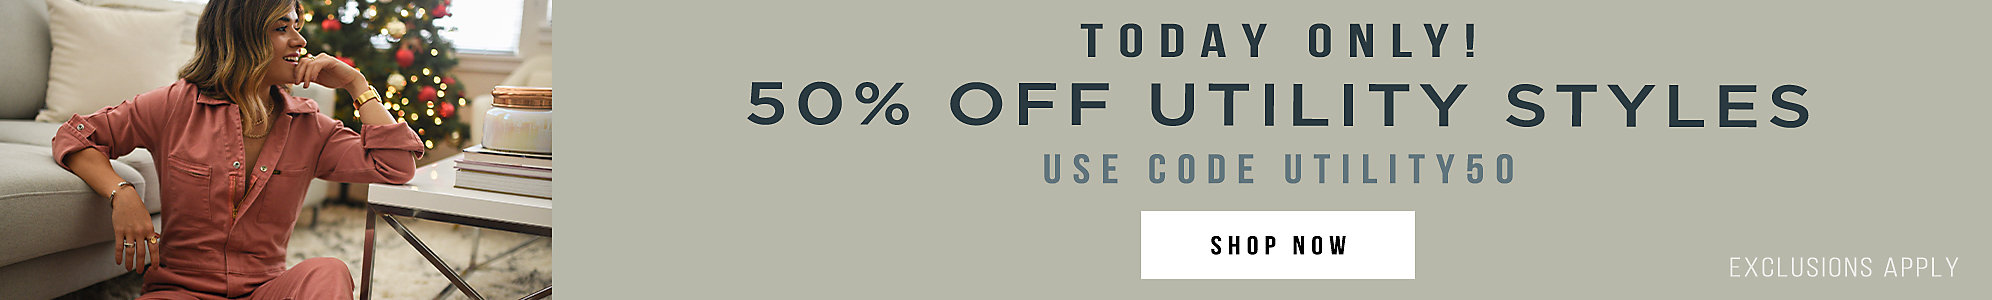 TODAY ONLY: 50% Off Utility Styles with code: UTILITY50